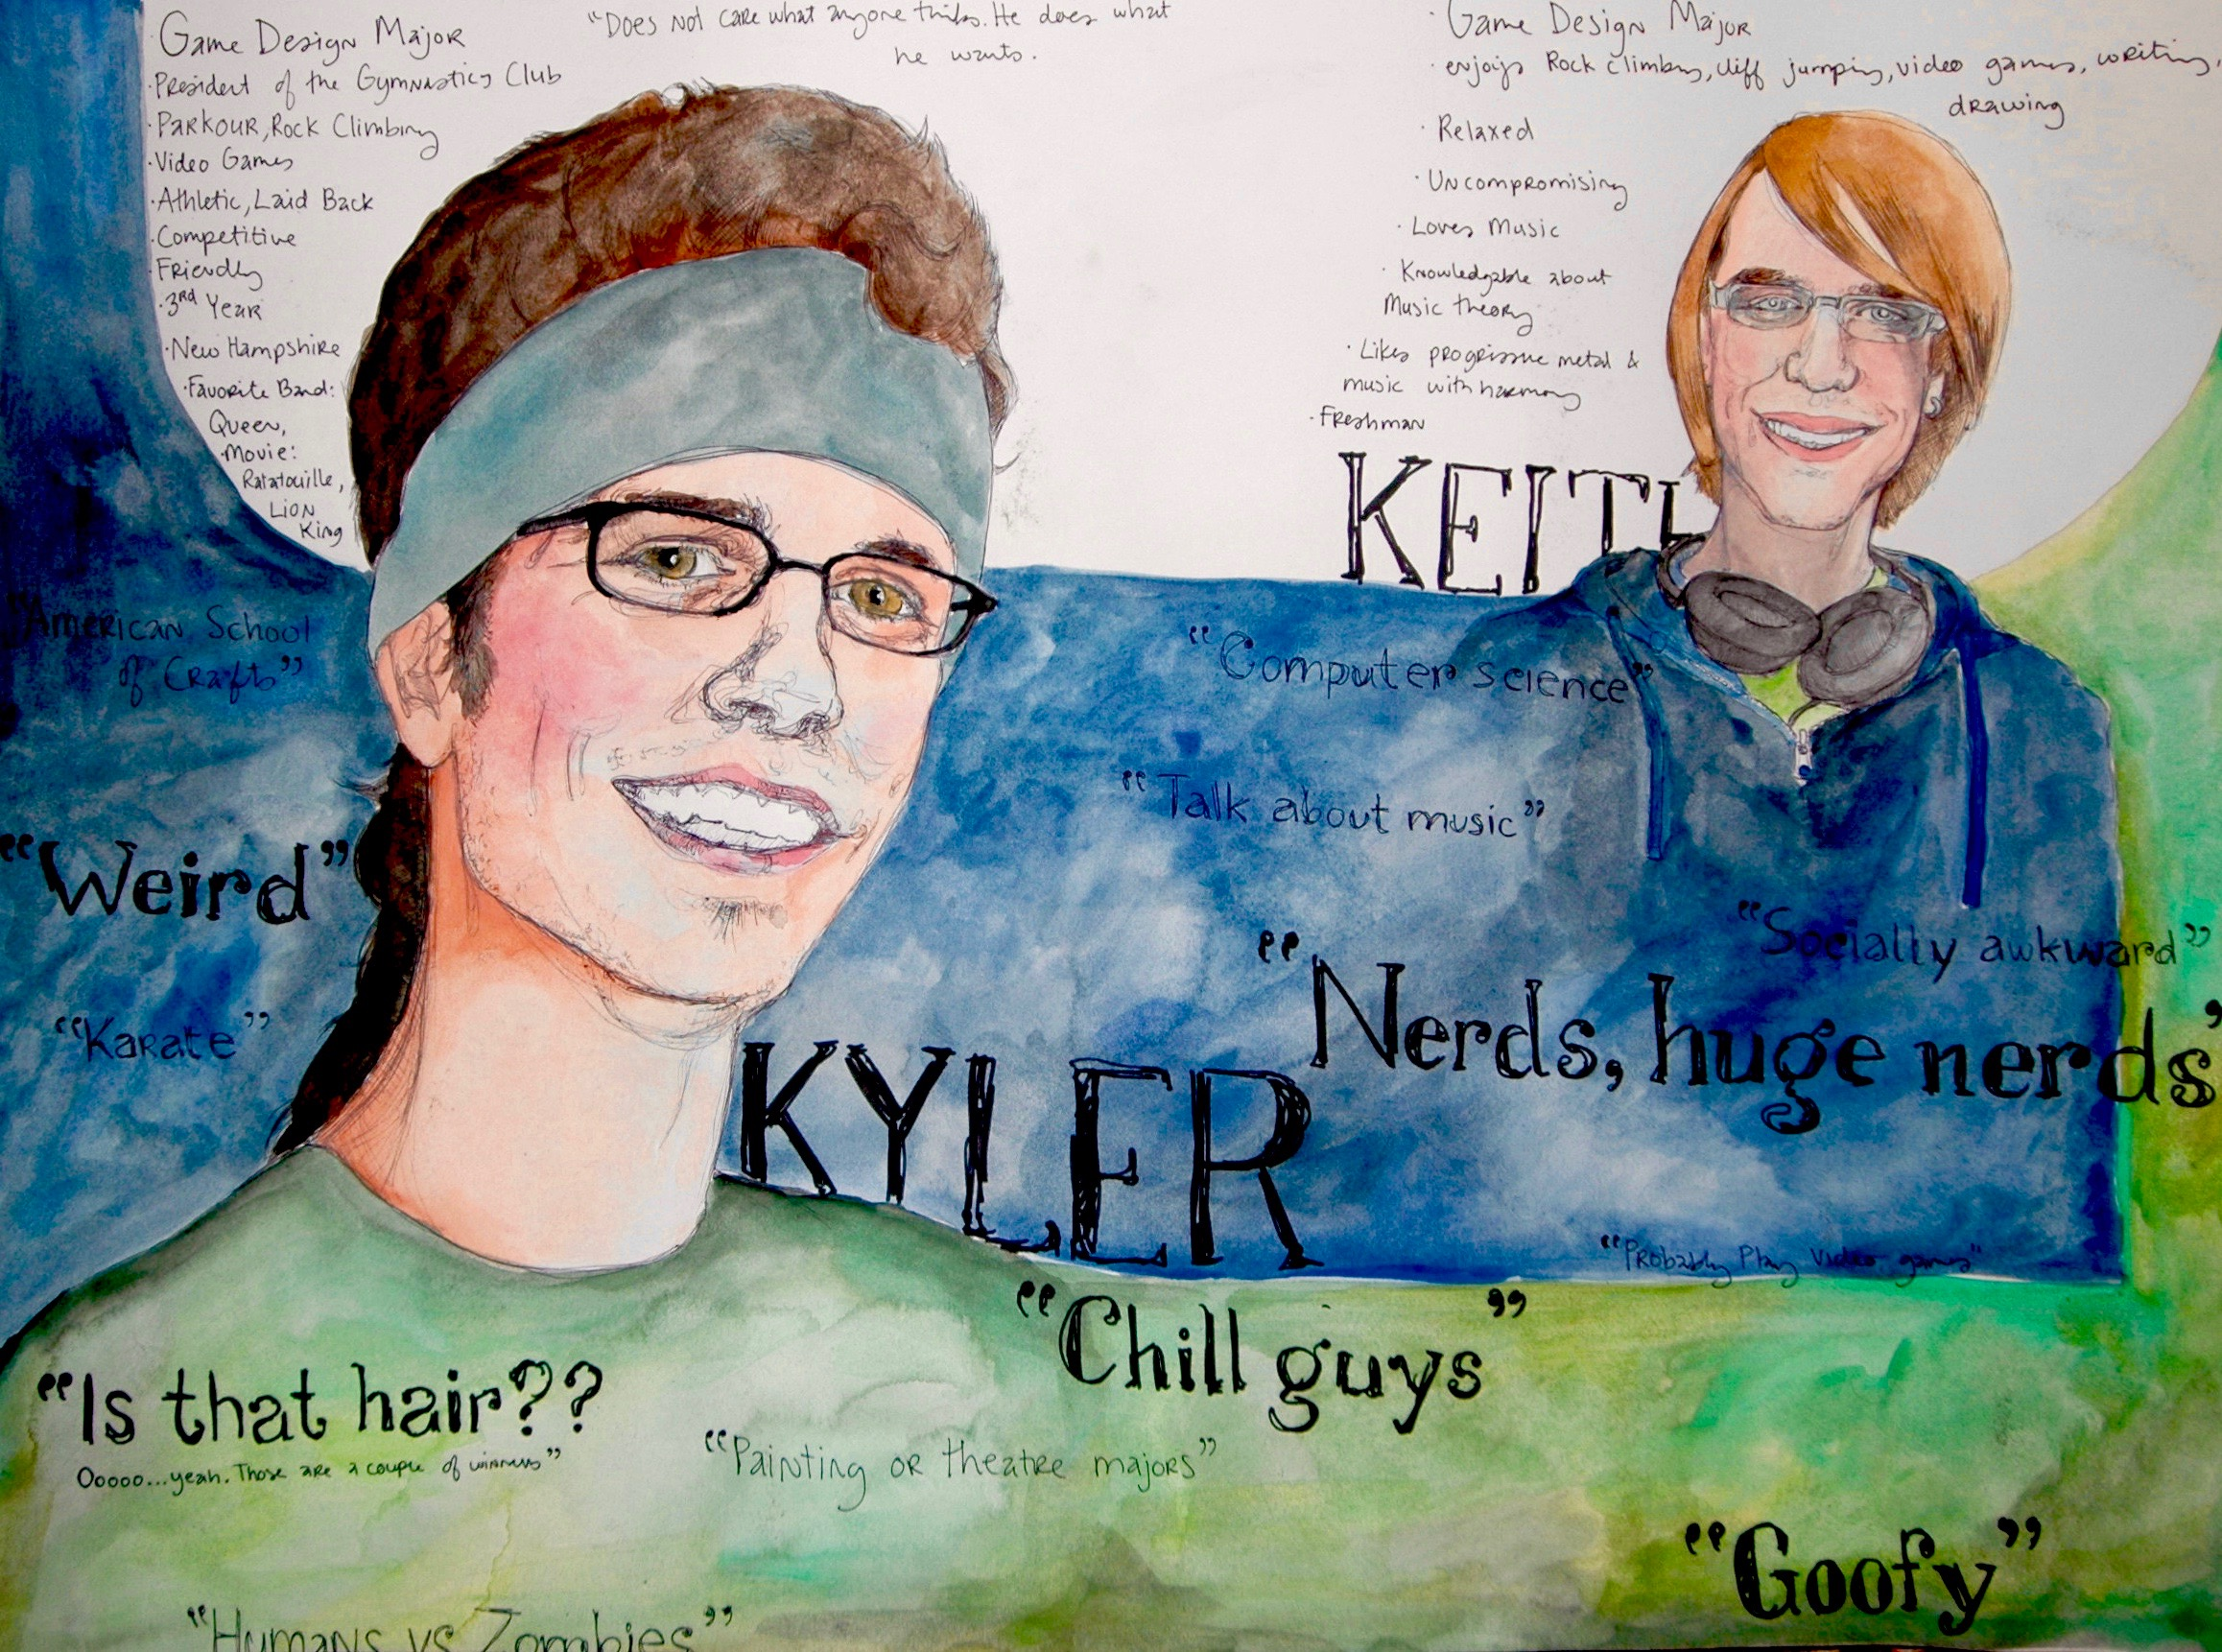 Kyler & Keith 2011, bic pen, watercolor & sharpie Sociology project at RIT where we asked two students if we could have strangers judge them from afar in combination with them telling us about themselves to see the contrast.